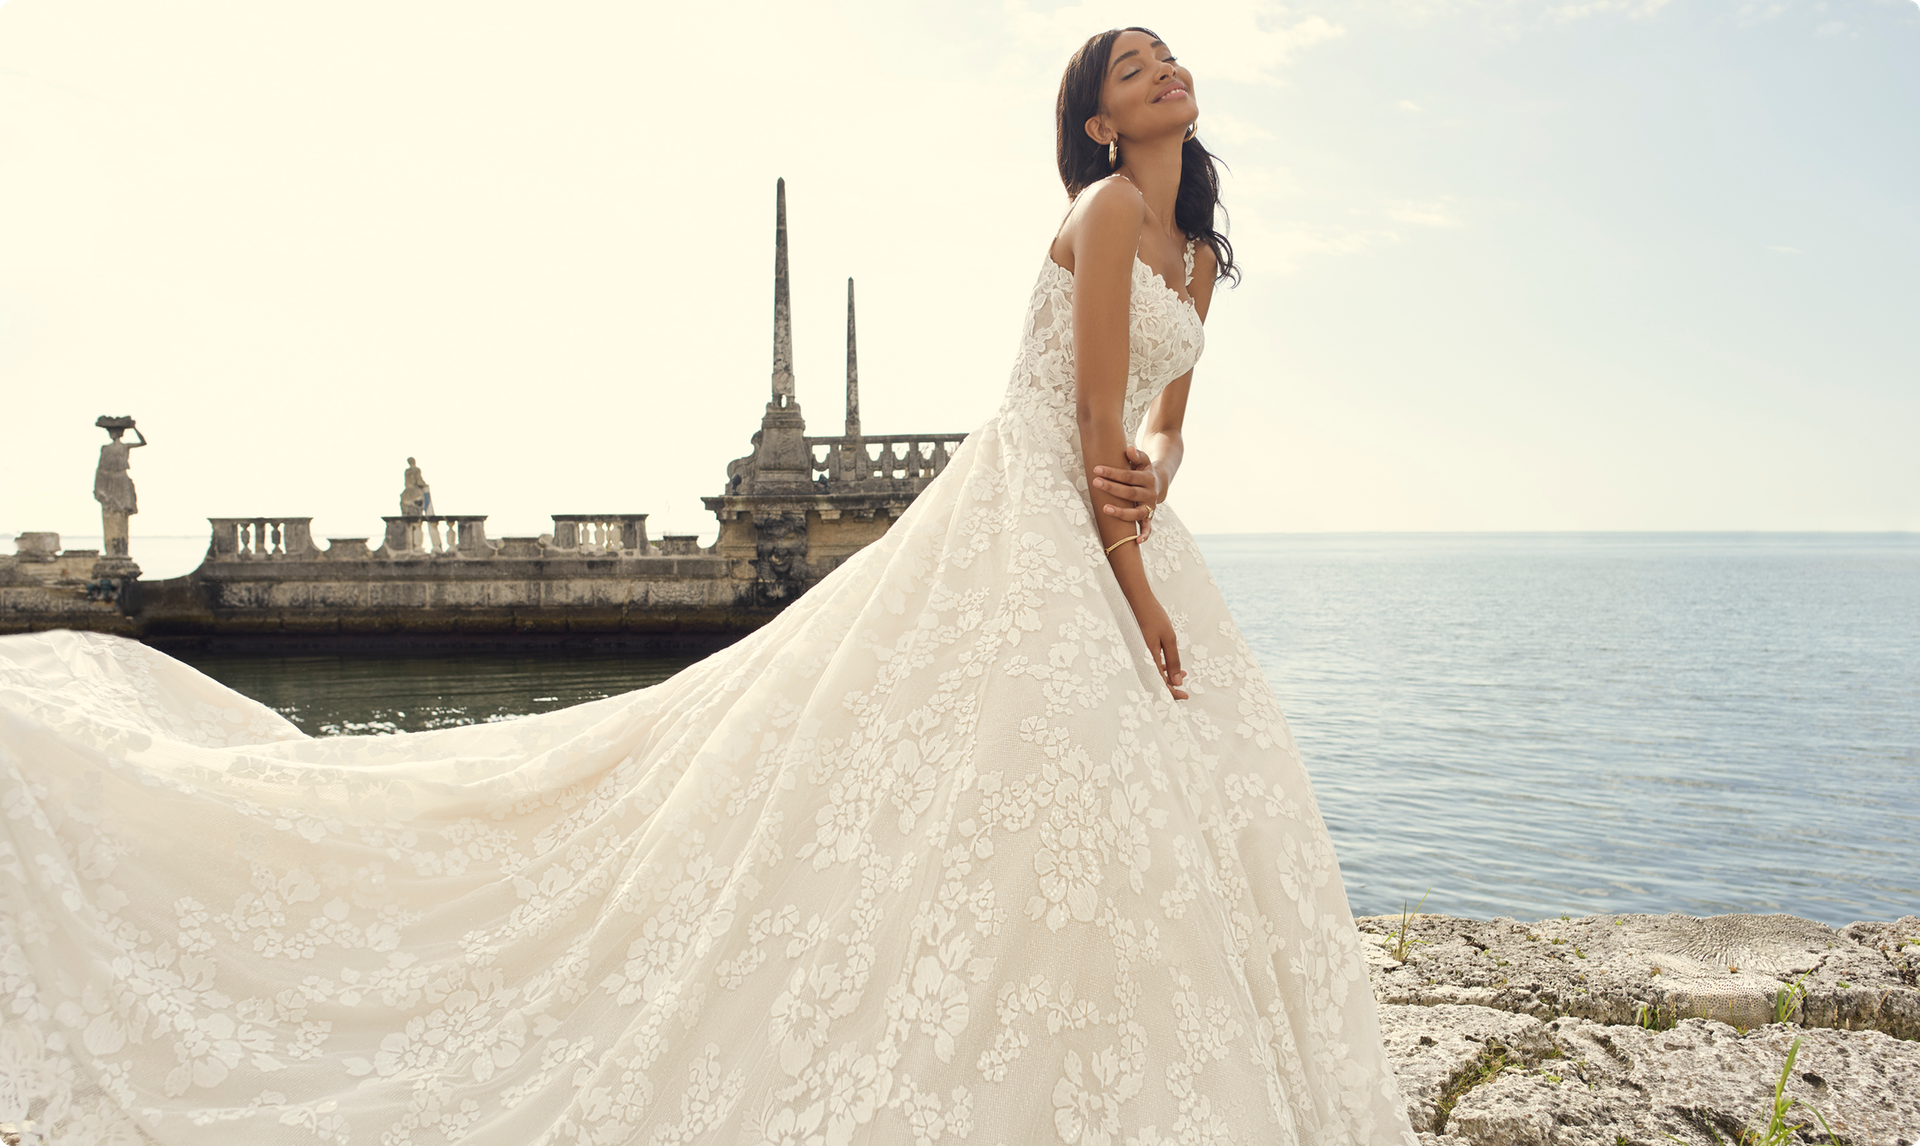 Sawyer Wedding dress by Sottero and Midgley